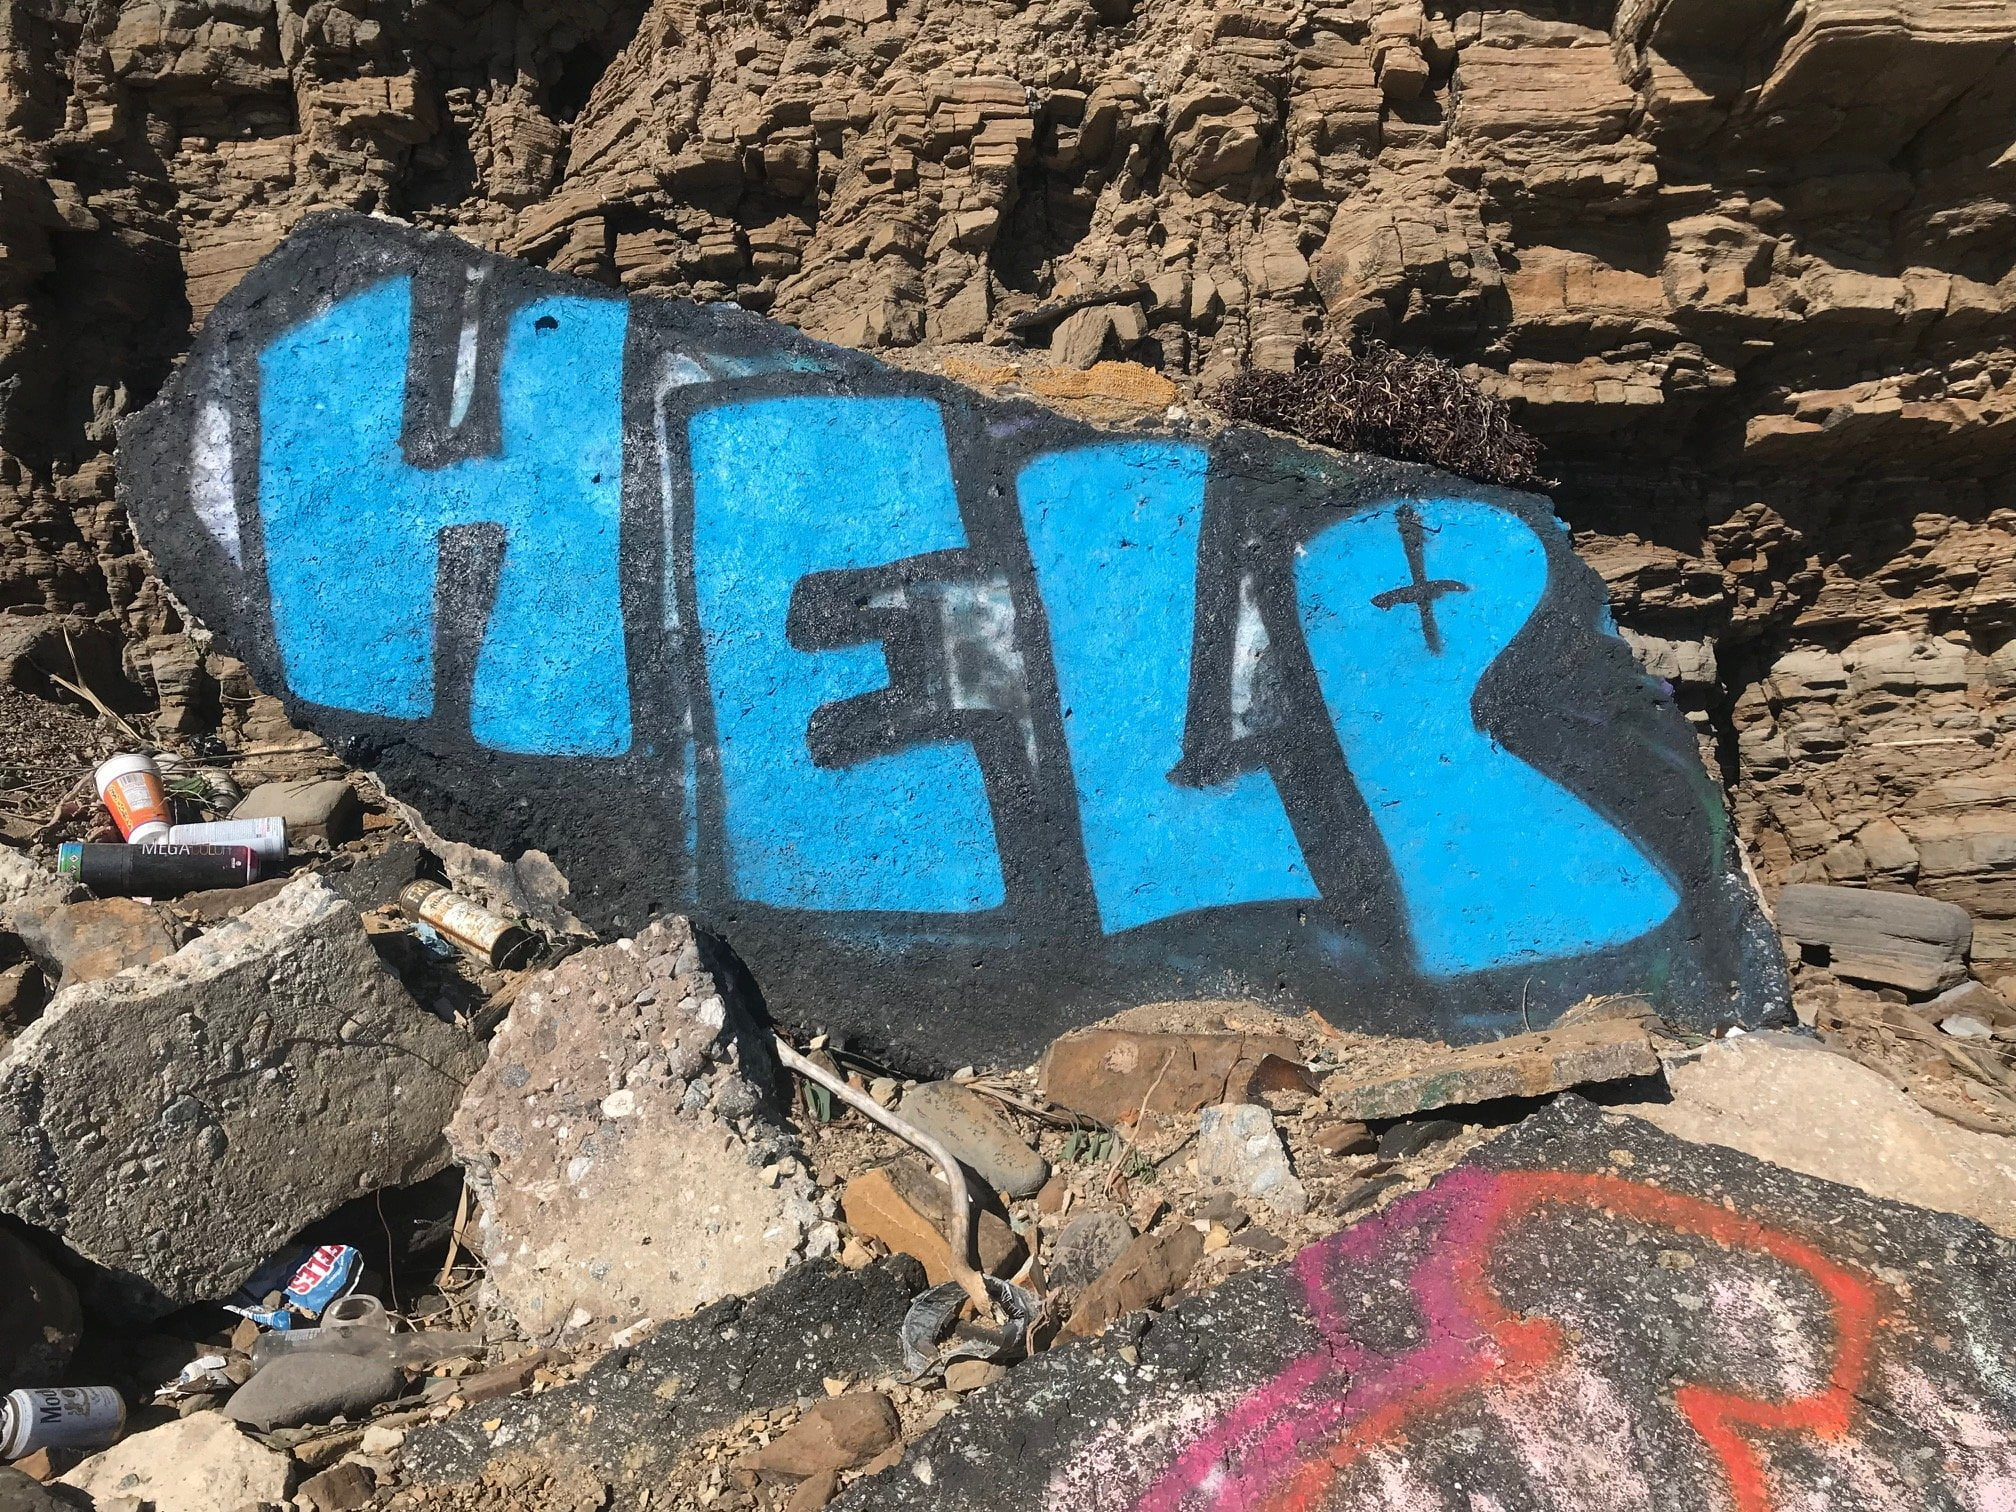 San Pedro Sunken City help graffiti